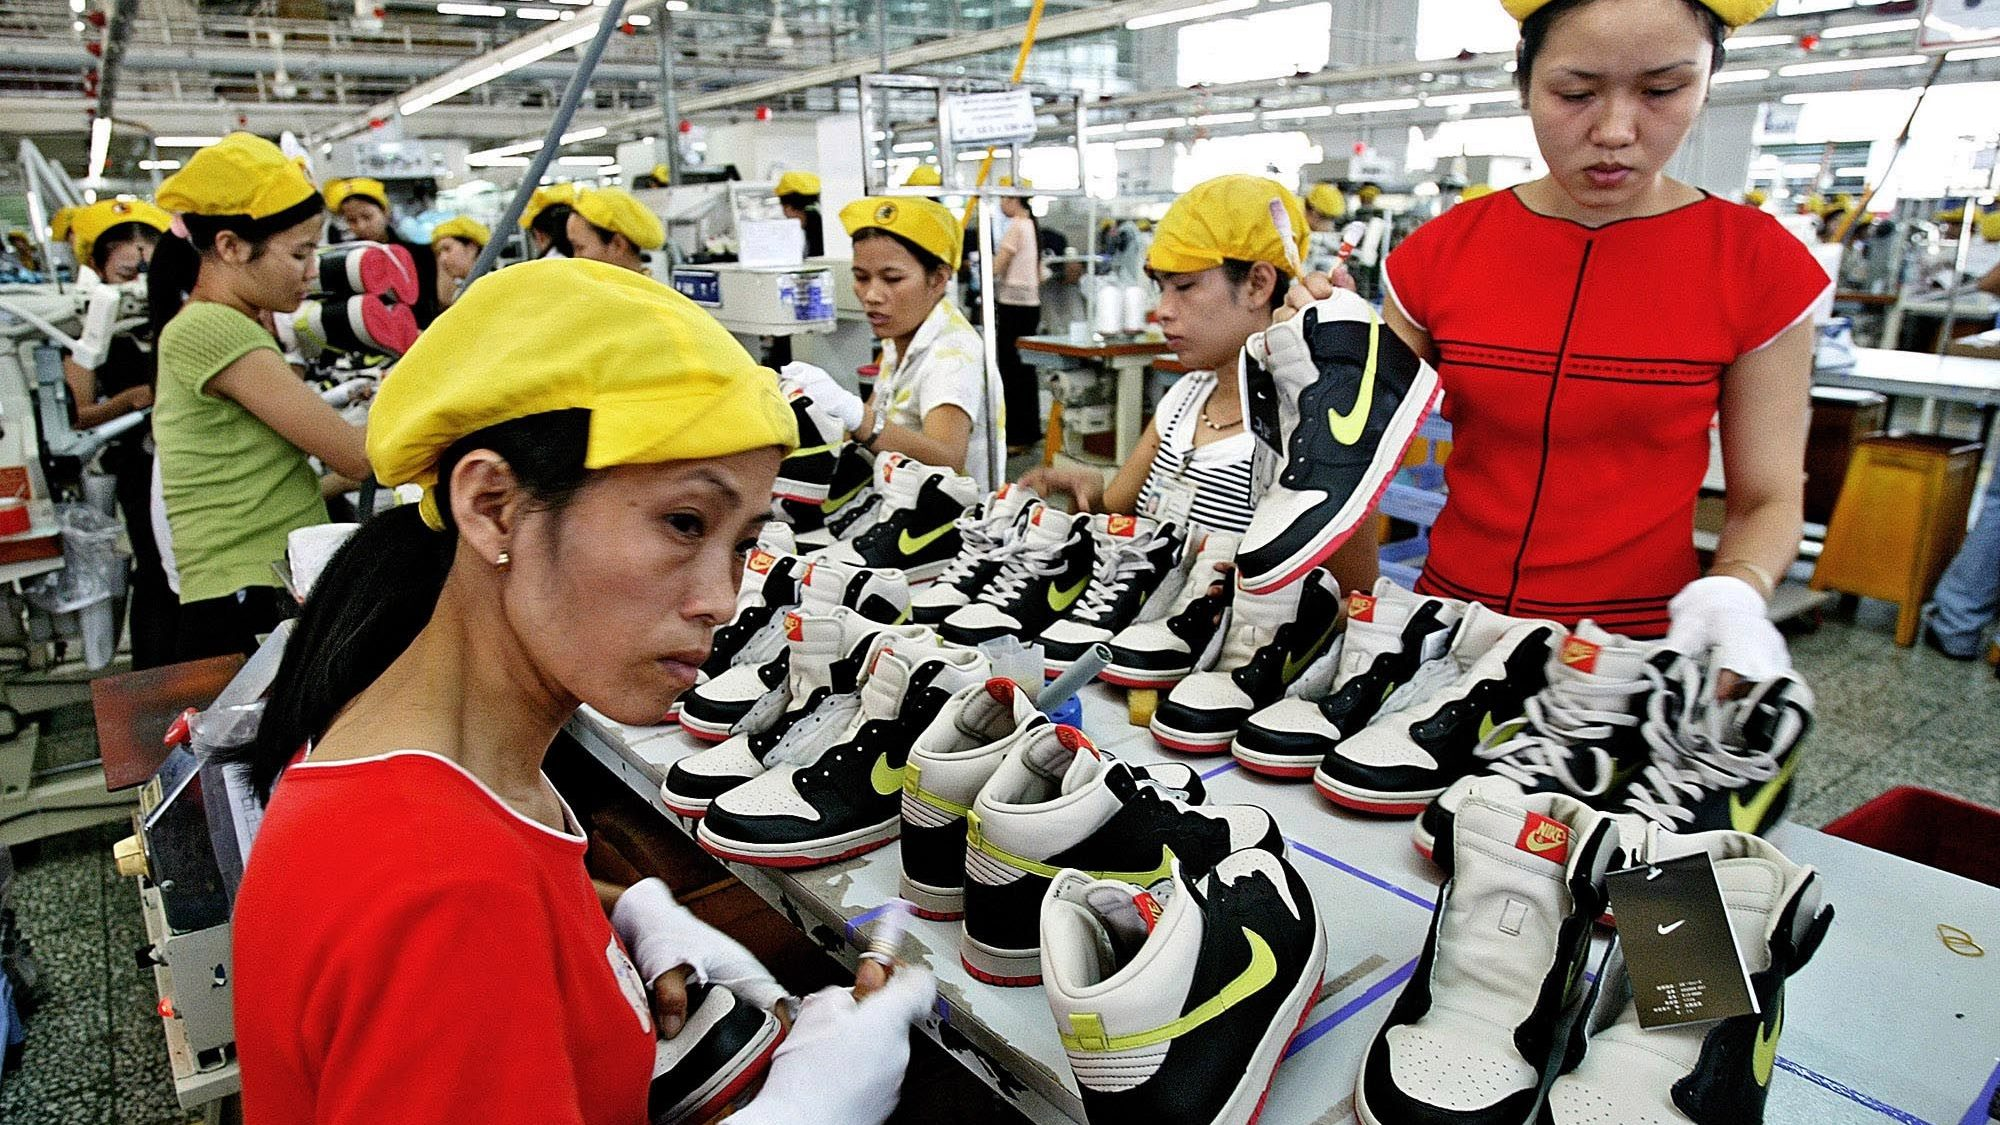 dbed1591 To see how Asia's manufacturing map is being redrawn, look at Nike and  Adidas